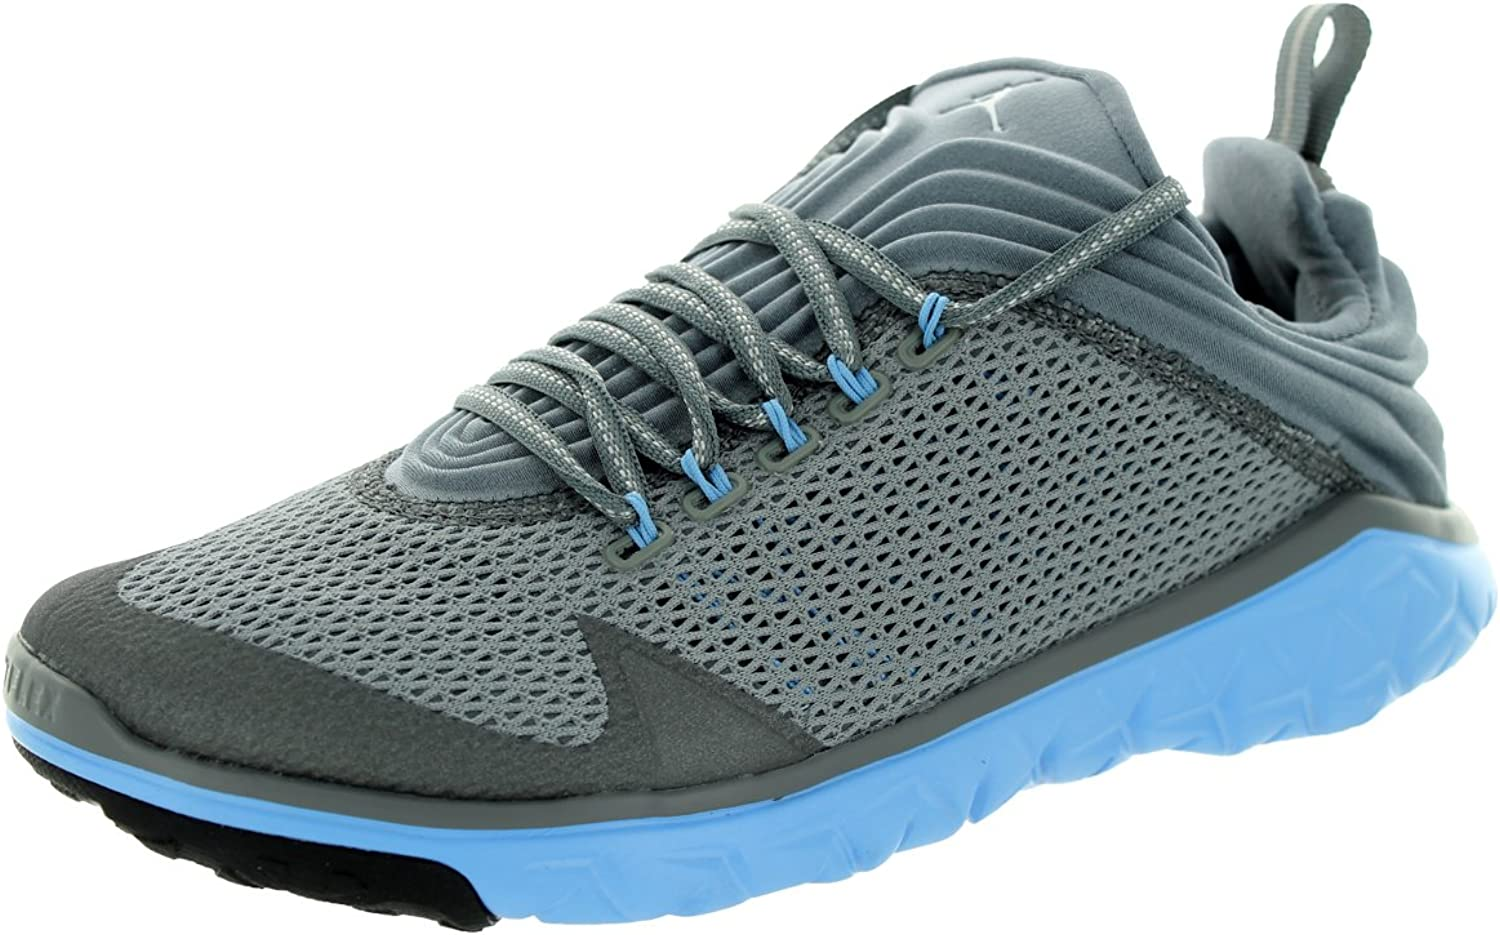 Jordan Nike Men's Flight Flex Trainer Cool Grey White Unvrsty bluee Training shoes 10 Men US